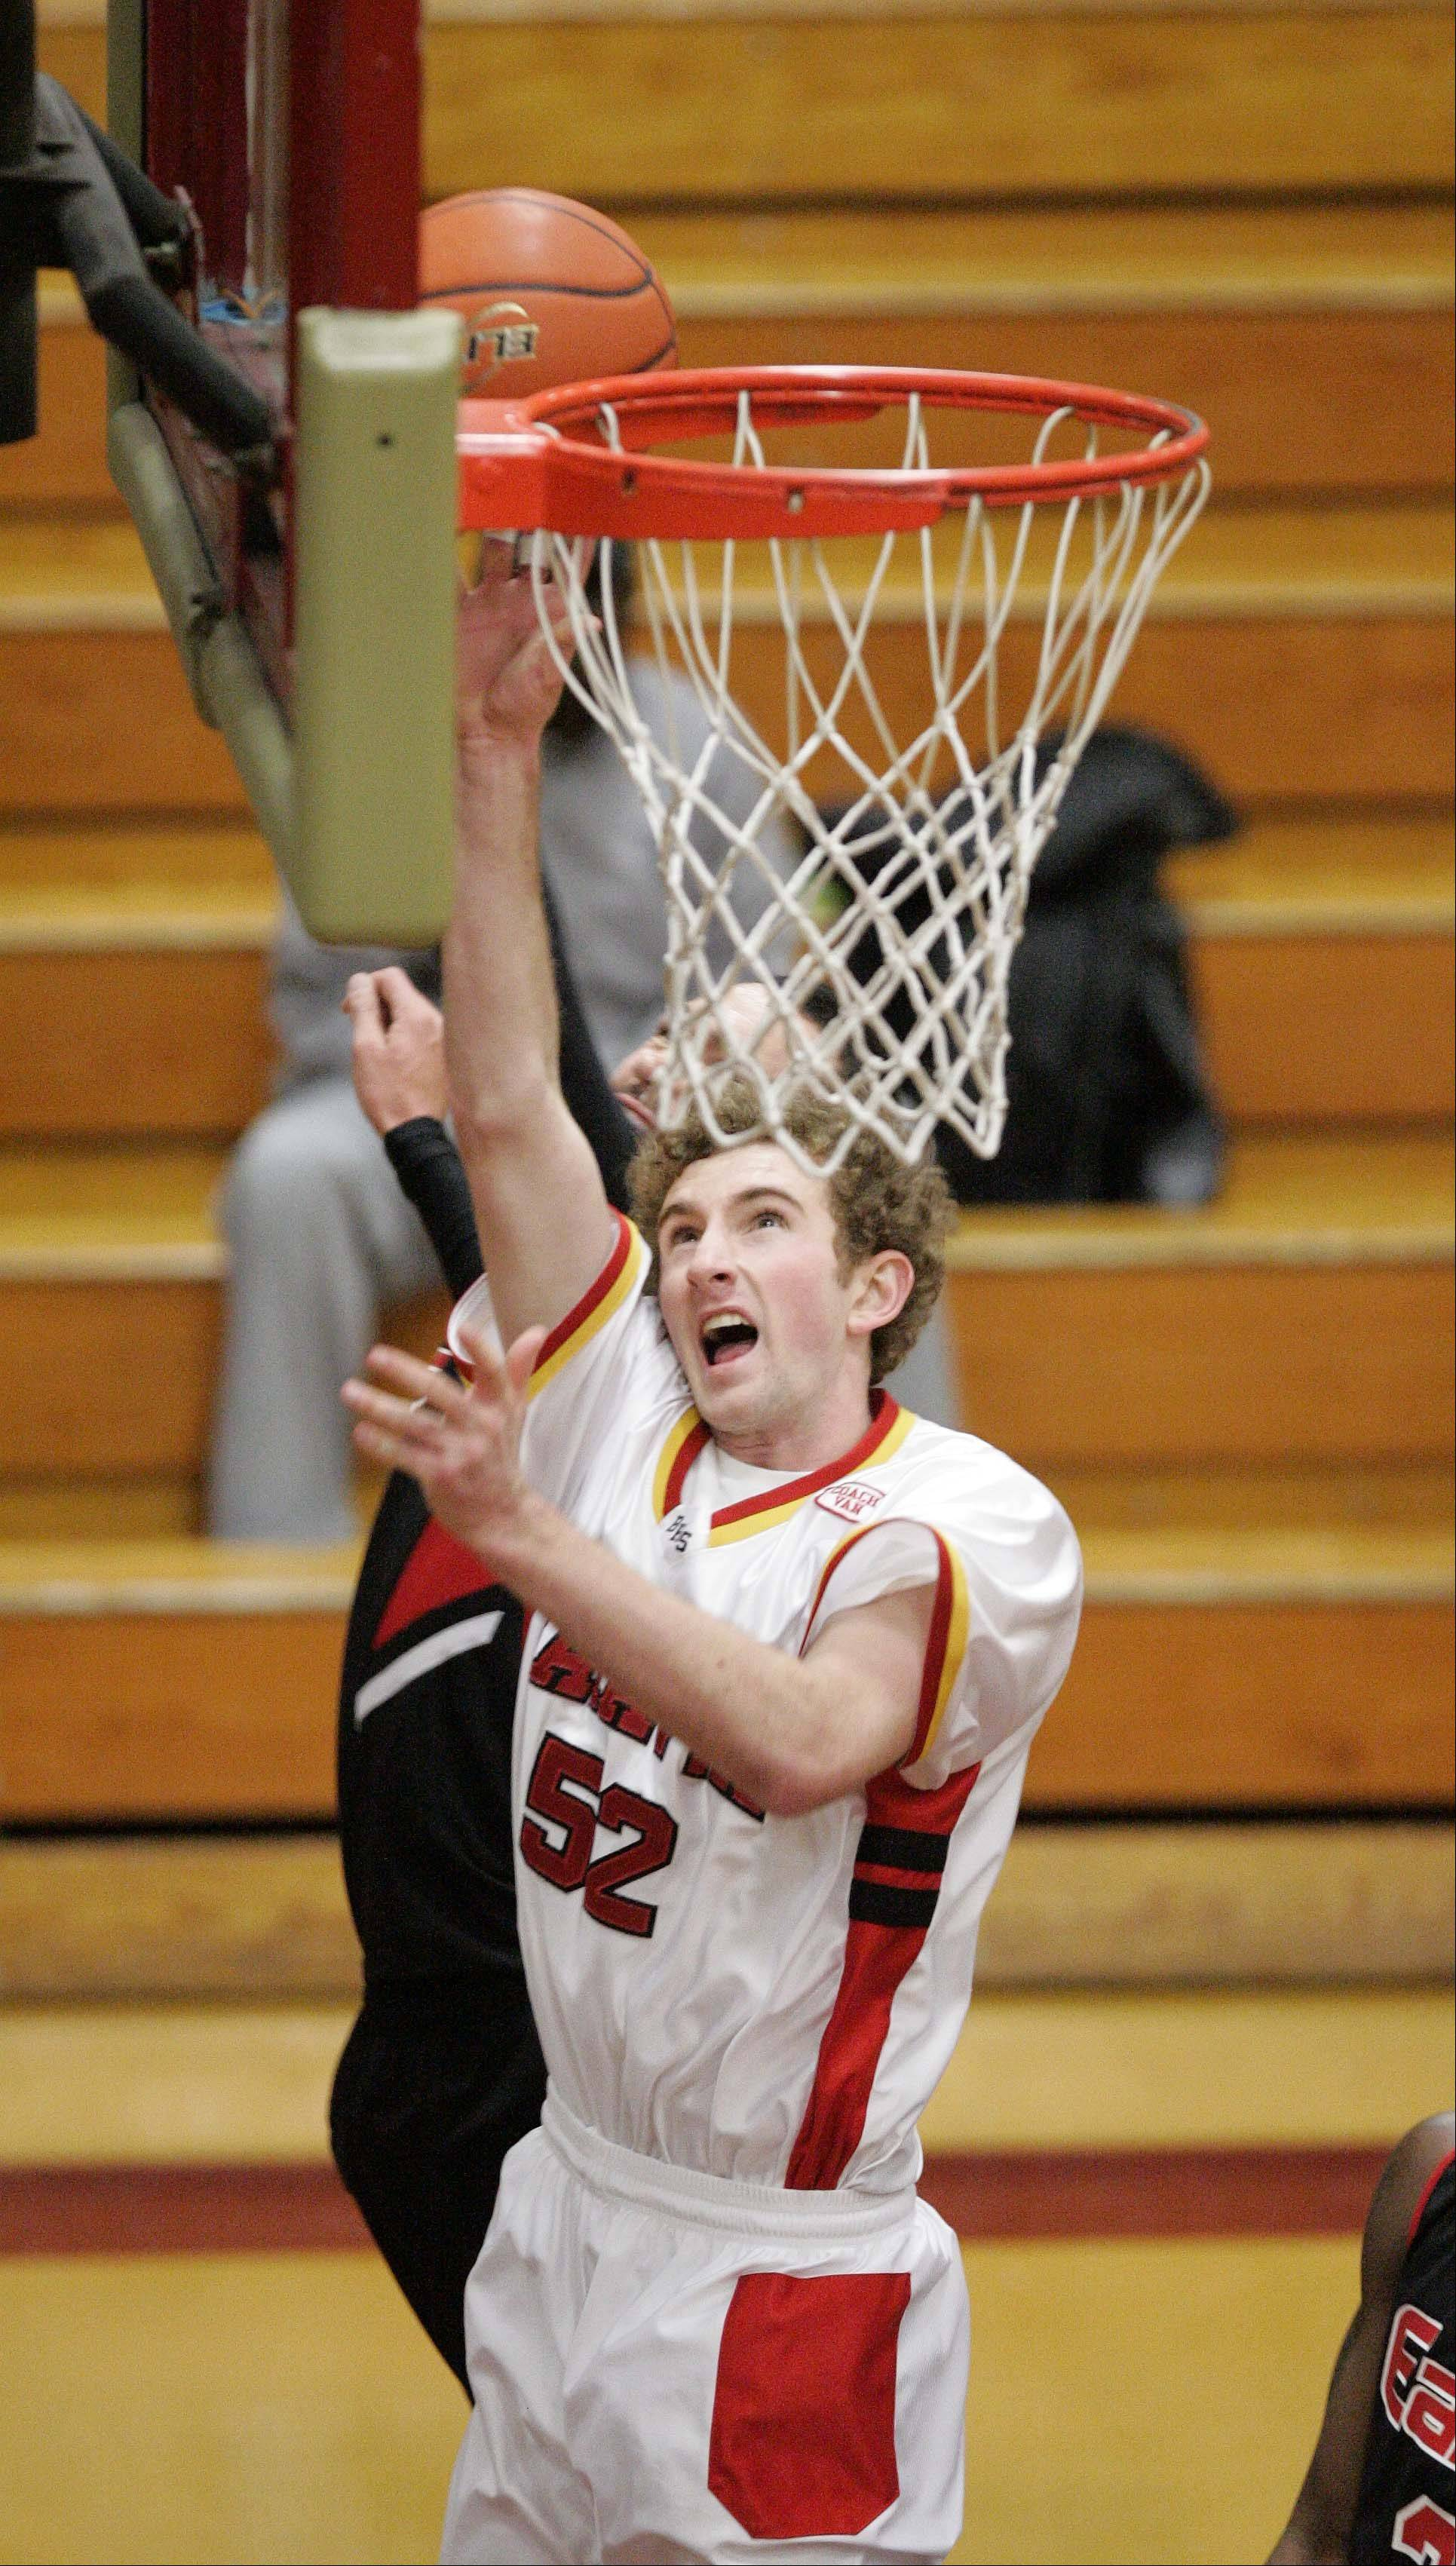 Batavia forward Luke Horton (52) goes hard to the hoop against Rockford East at the 38th Annual Elgin Boys Holiday Basketball Tournament Thursday December 27, 2012.